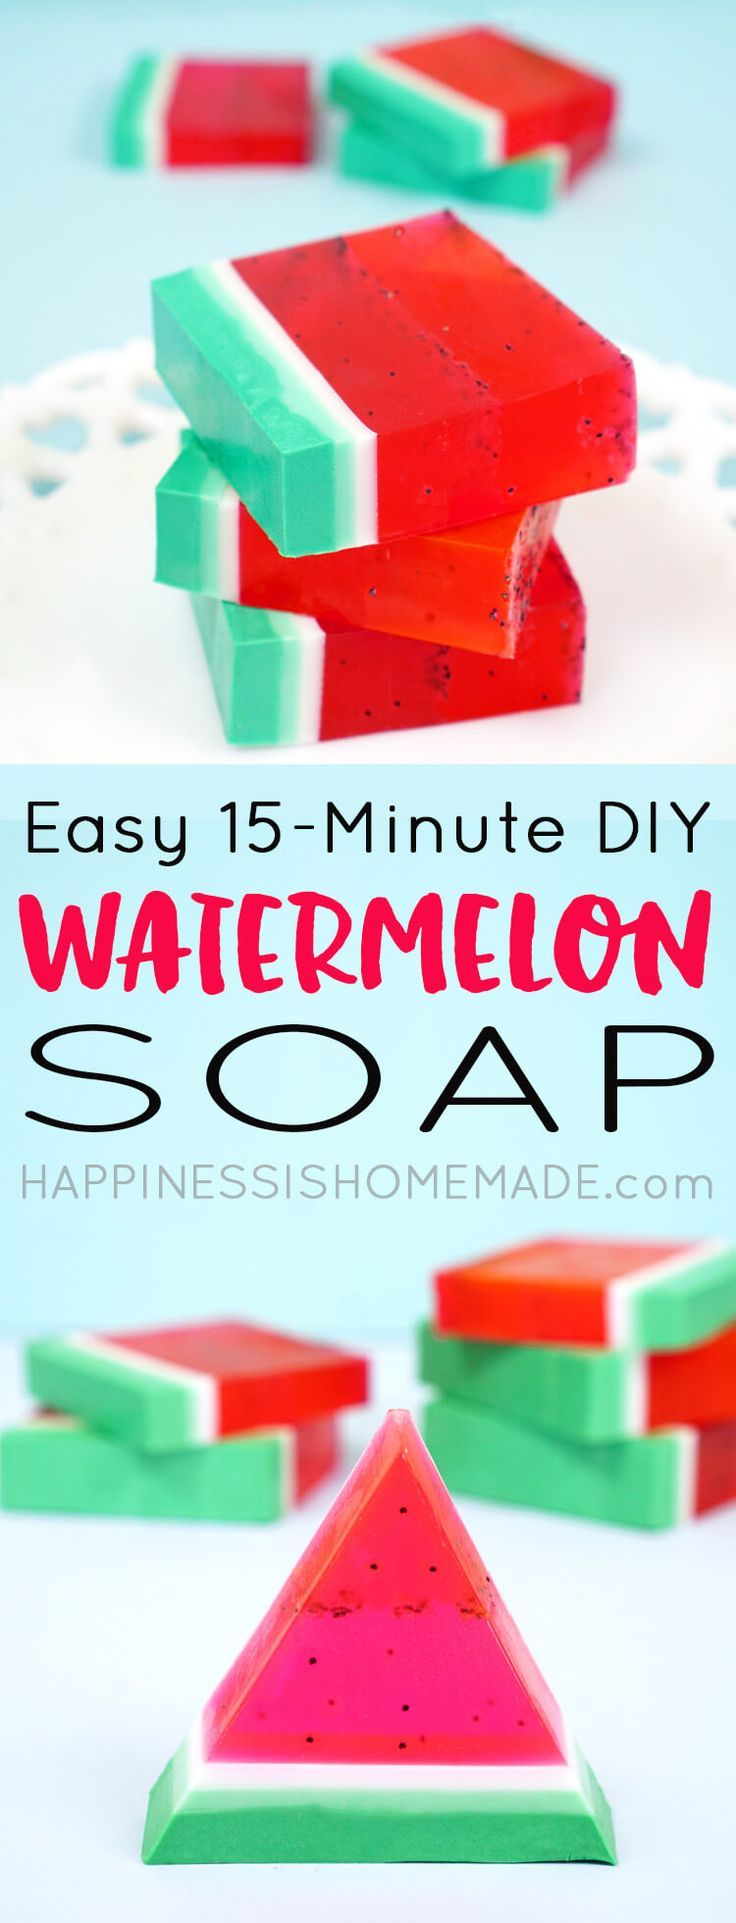 This cute and easy DIY Watermelon Soap can be made in just 15 minutes, and it smells delicious! A quick and easy homemade gift idea that's perfect for friends, family, teachers, and more! via @hiHomemadeBlog #craft